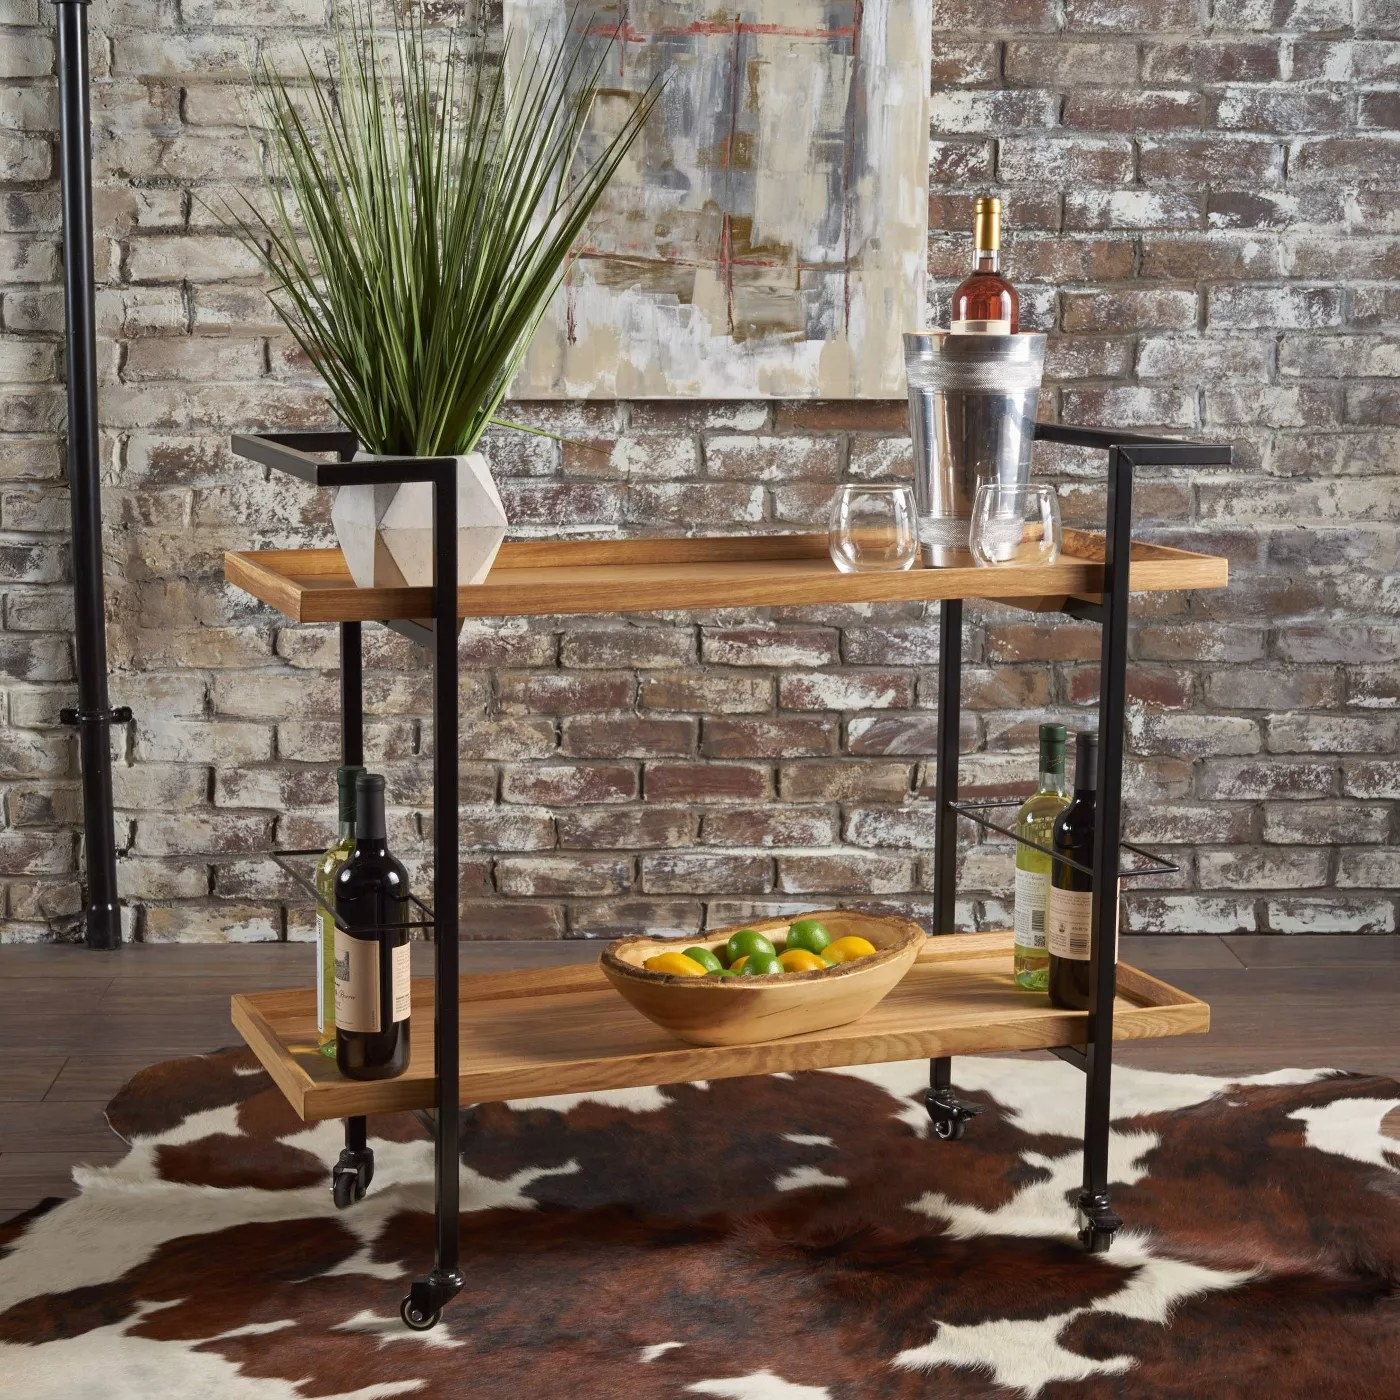 A rolling bar cart with natural shelves and an iron frame